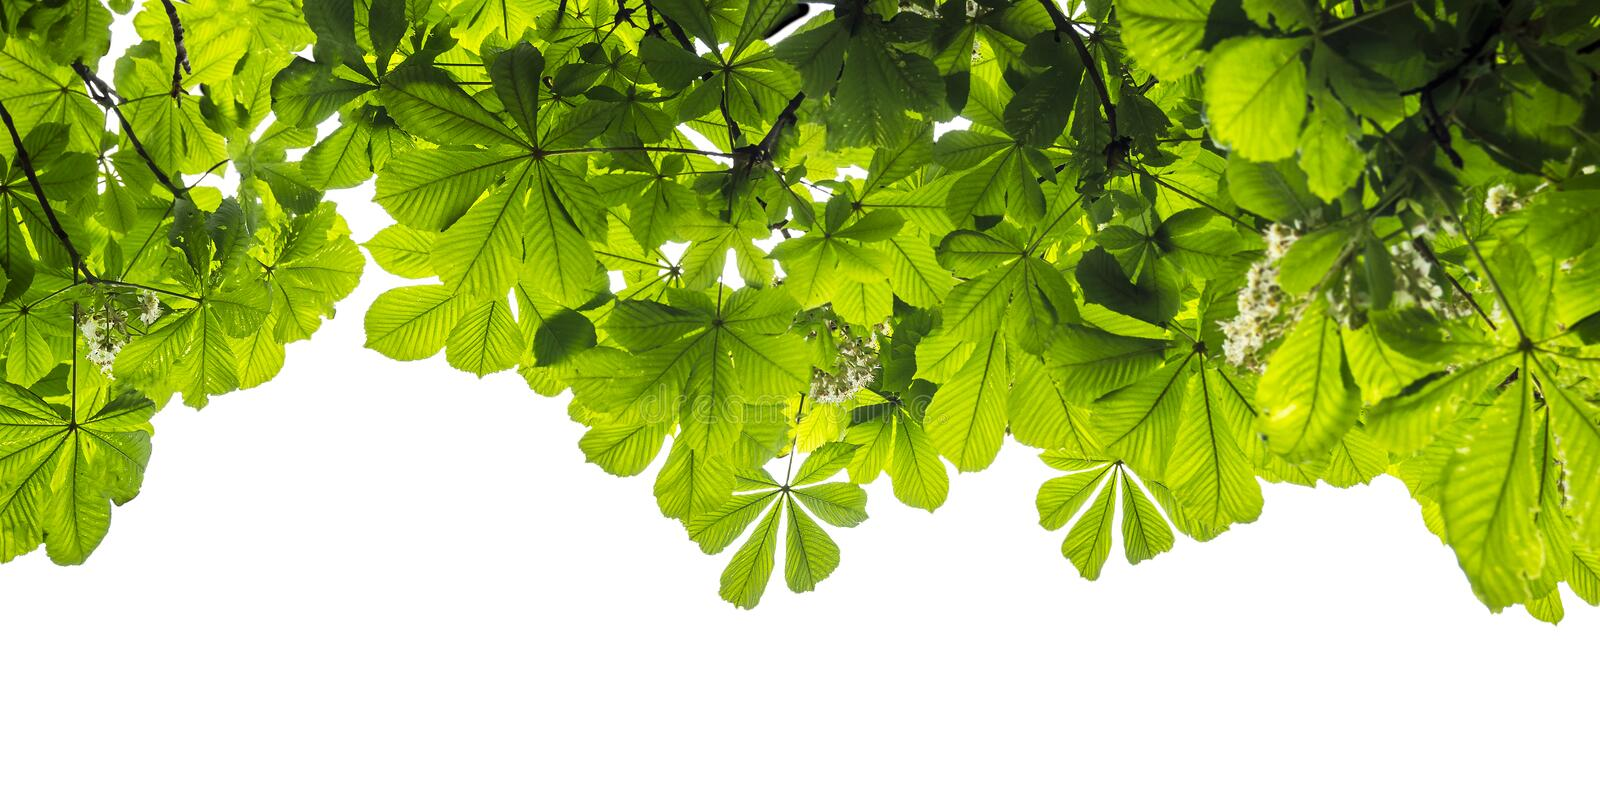 Green foliage of the chestnut tree isolated on white background. Border royalty free stock photo